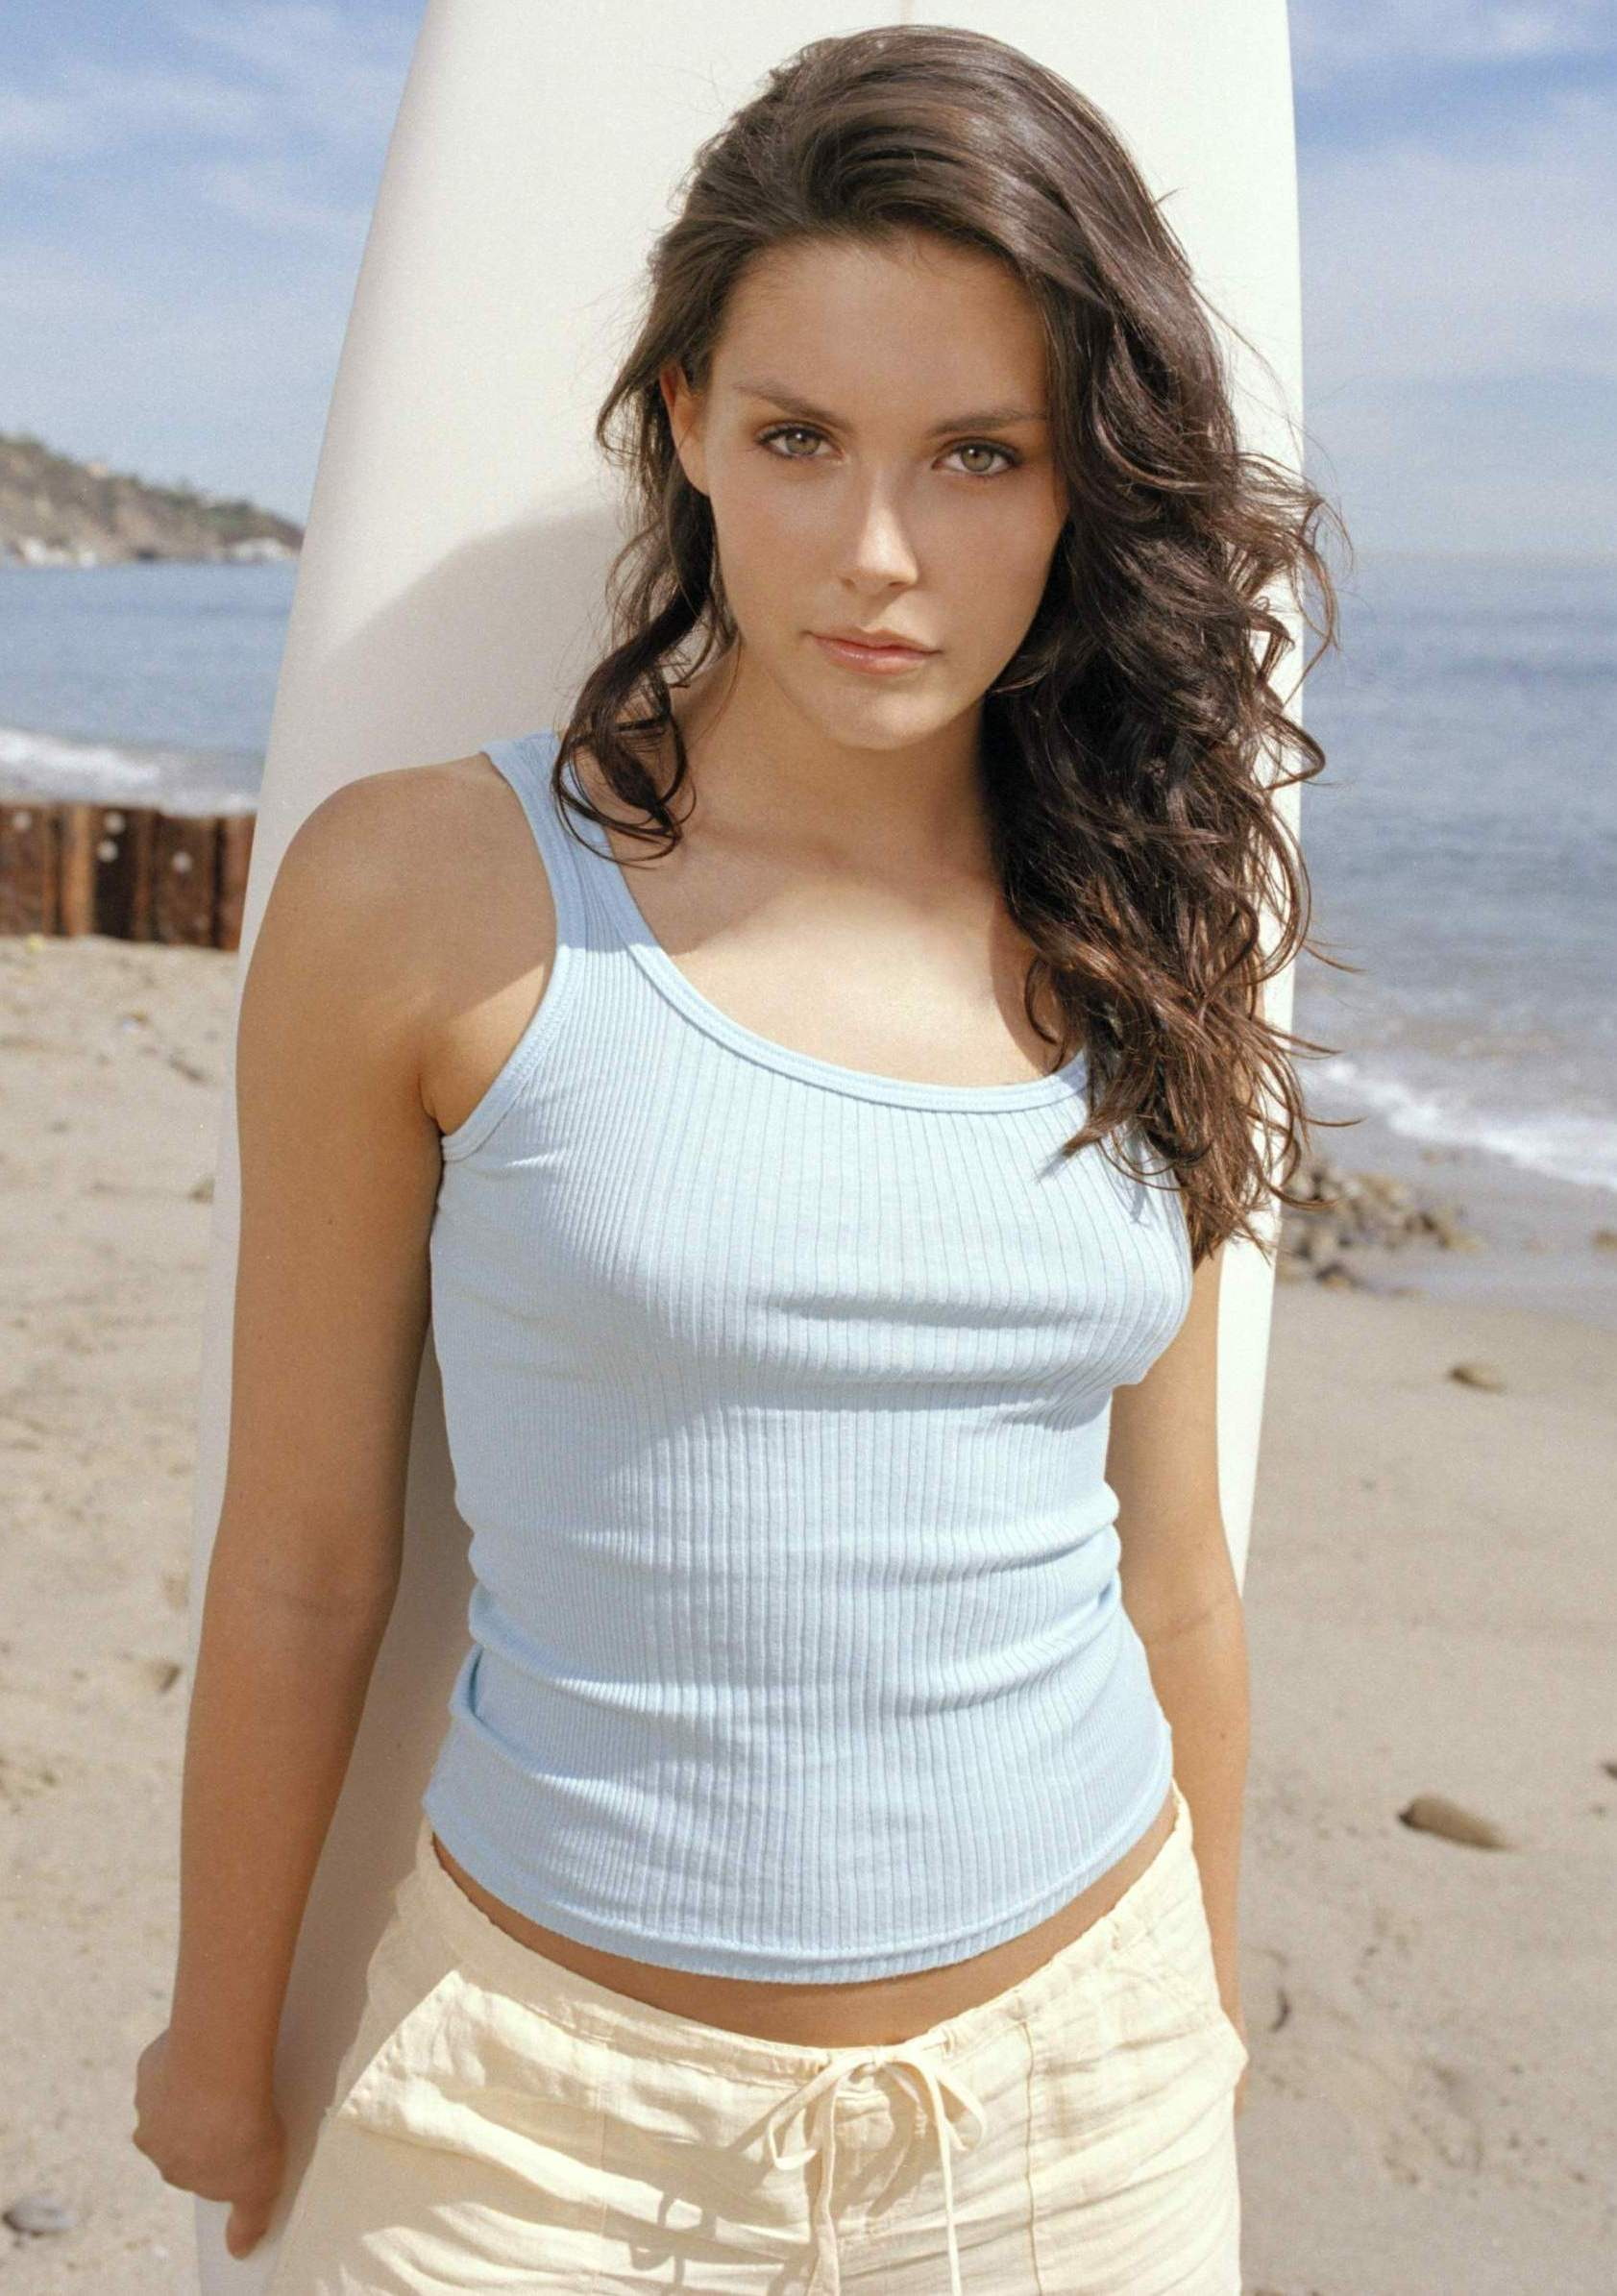 Hair Style Taylor Cole Wallpaper Actress